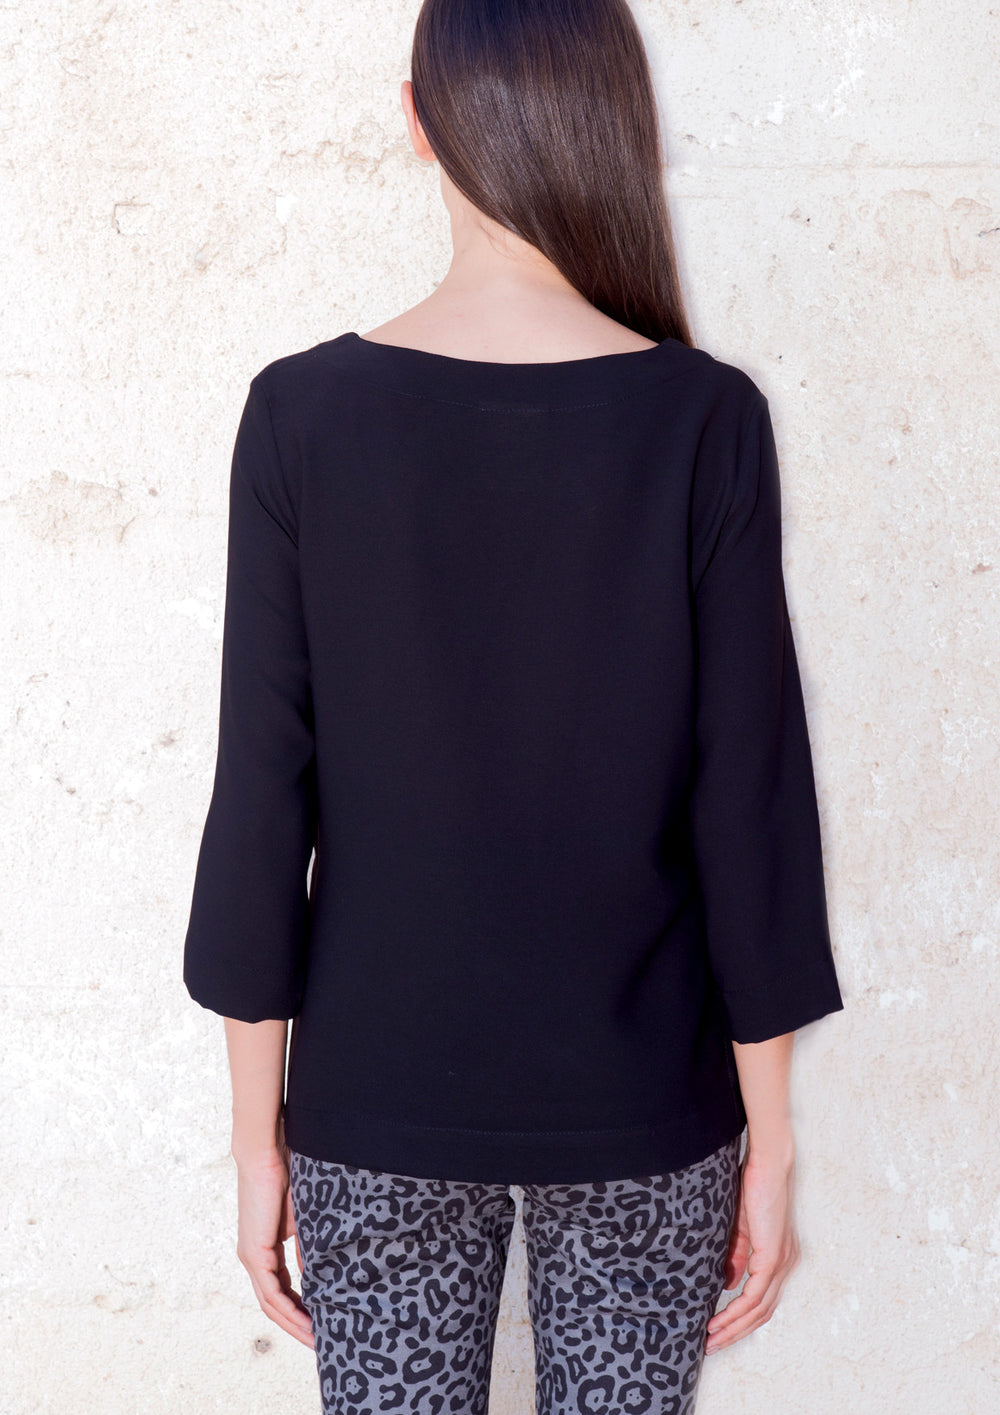 Boat-neck shirt in black